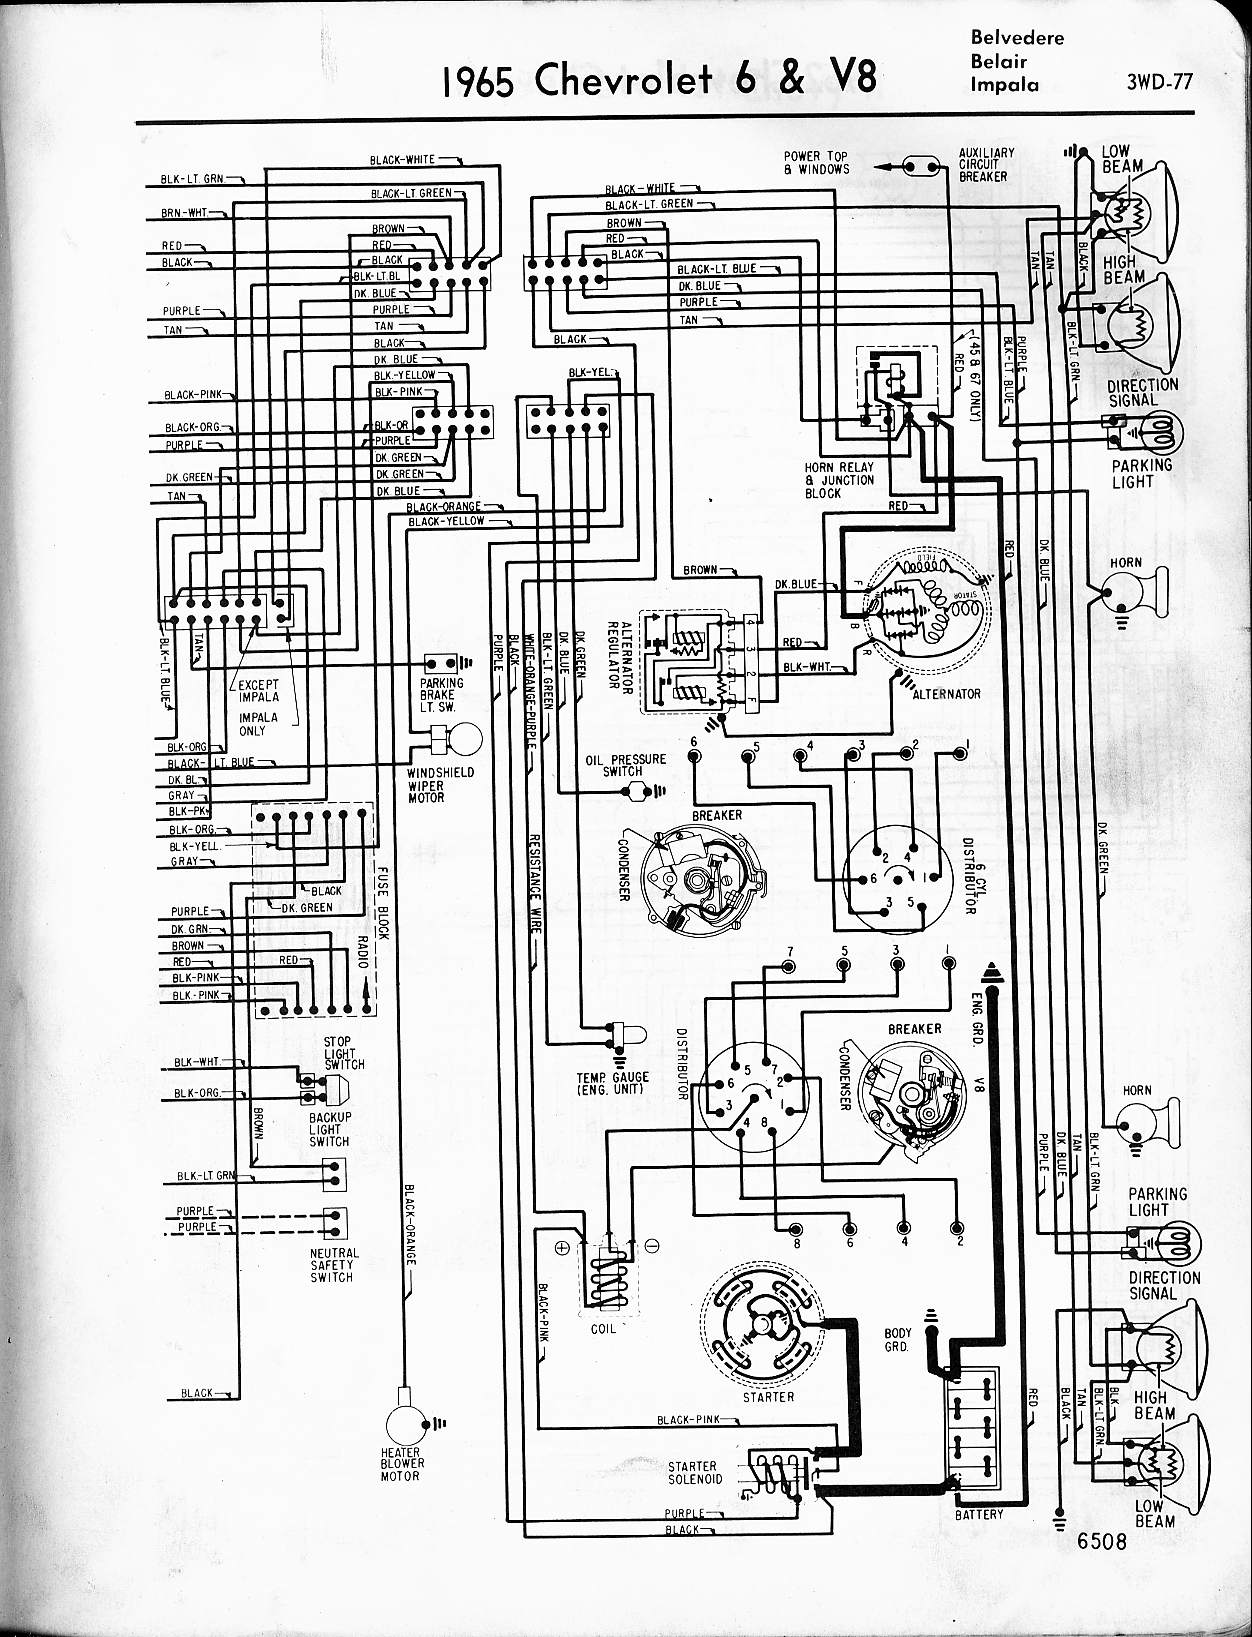 1970 camaro wiring diagram android apps on google play best wiring  android apps on google play voltage regulator wiring diagram 1968 chevy camaro wiring library 2001 dodge ram voltage regulator location 1968